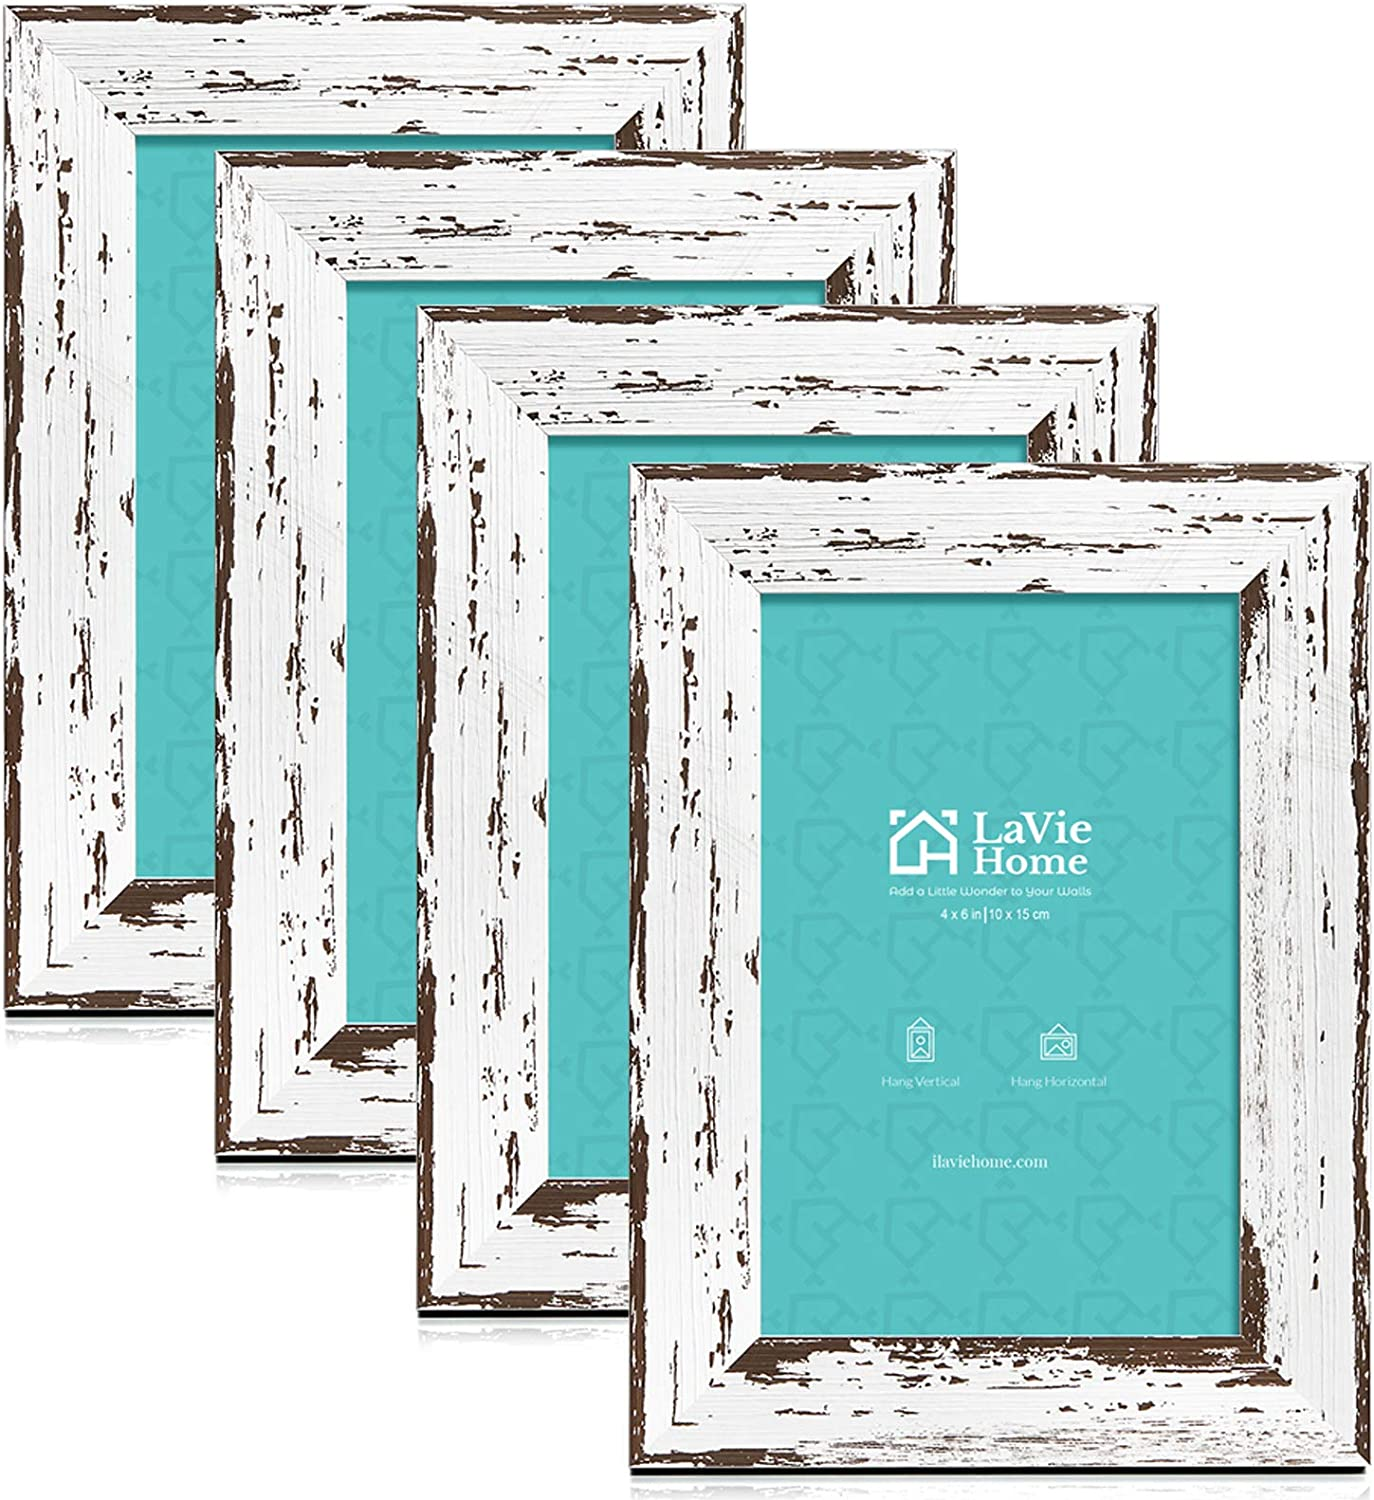 LaVie Home 4x6 Picture Frames (4 Packs, Distressed White) Wooden Textured Finish Photo Frame with High Definition Glass for Wall Mount & Tabletop Display